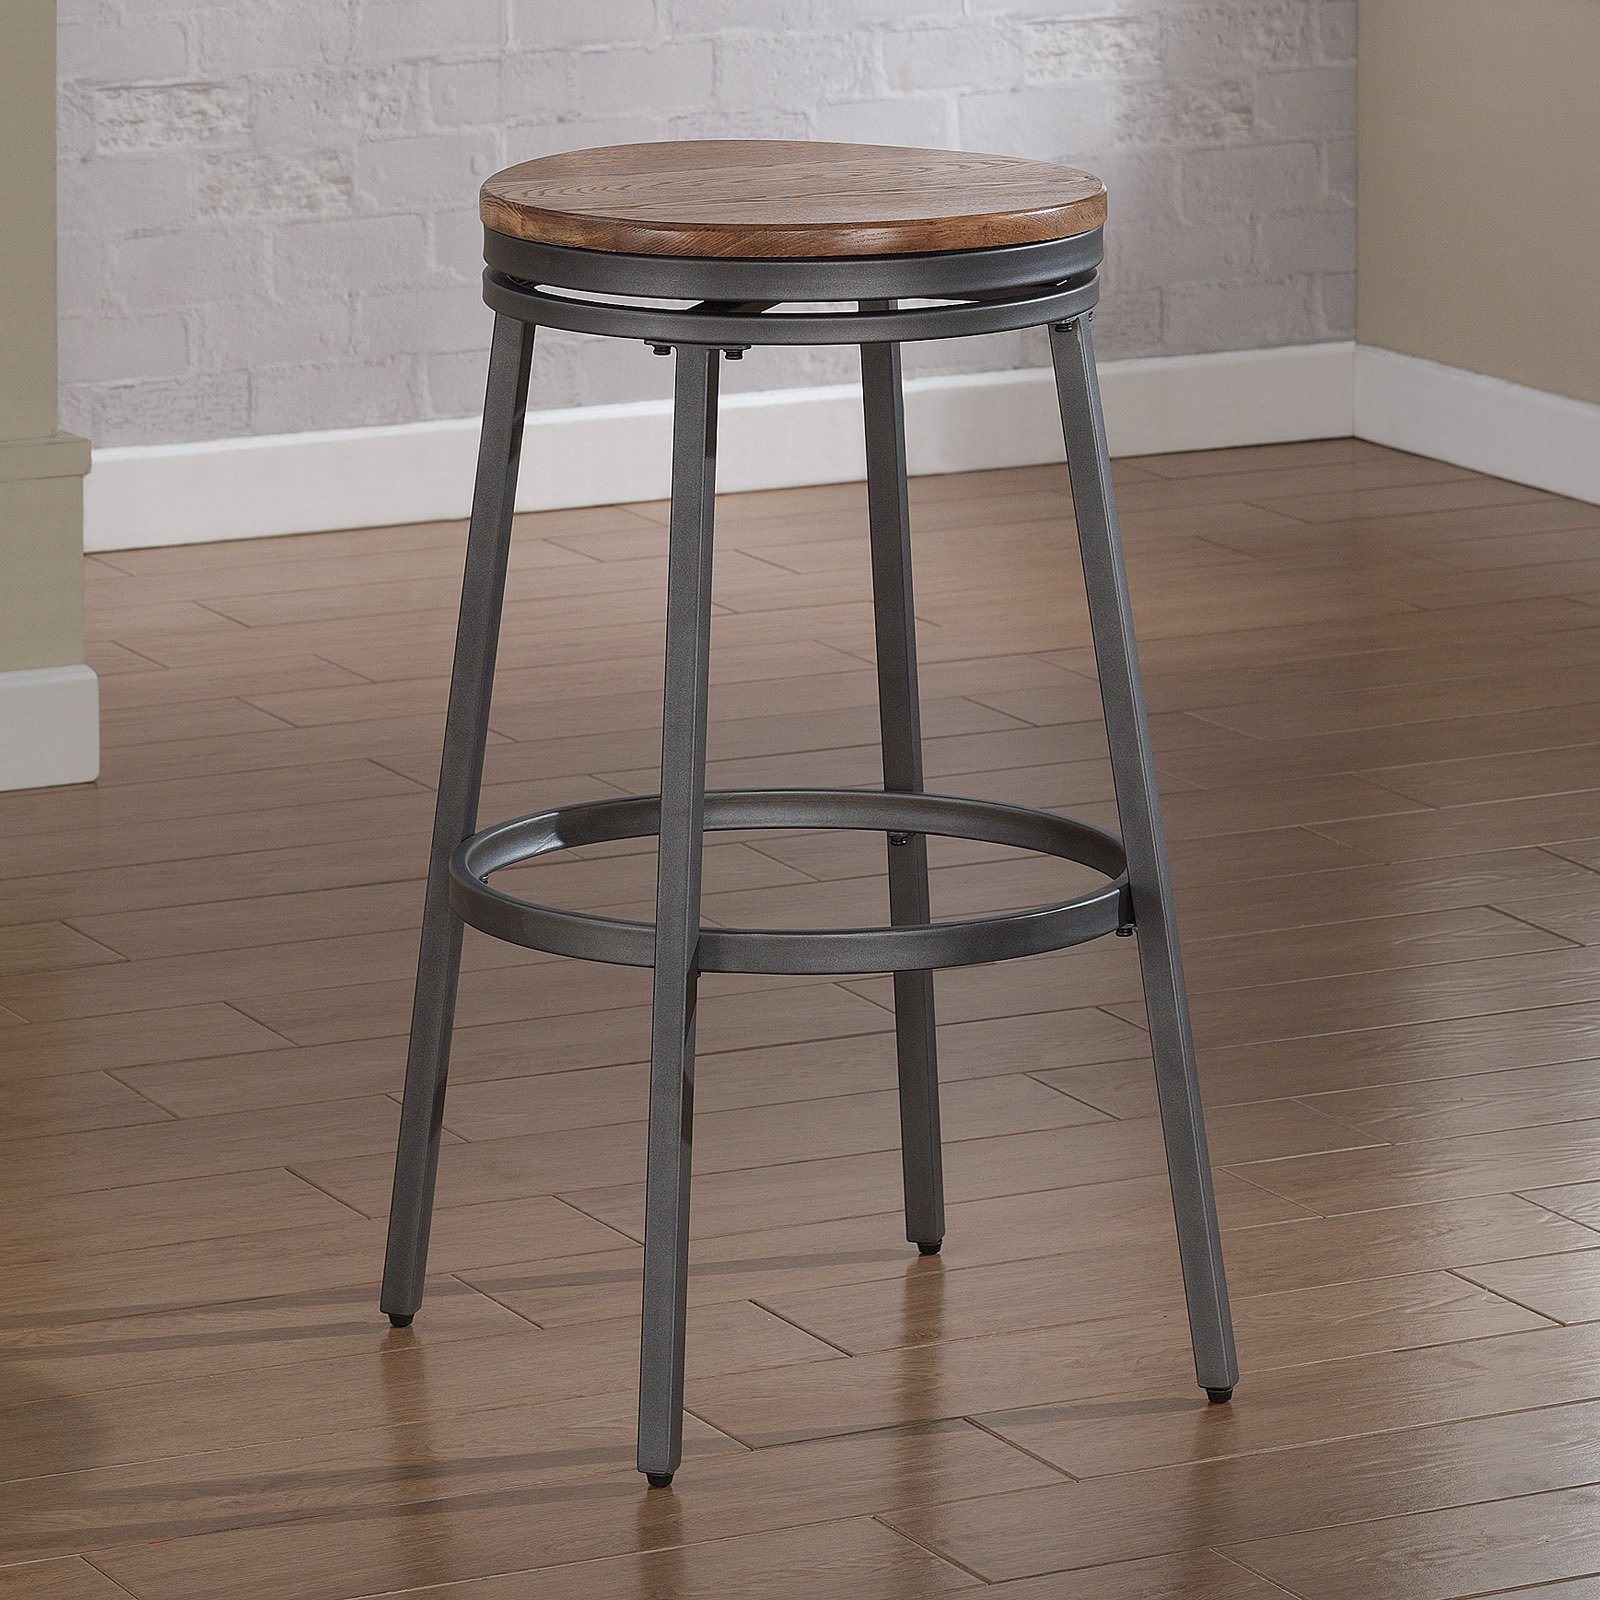 American Woodcrafters Stockton Backless Counter Stool - Slate Gray/Golden Oak